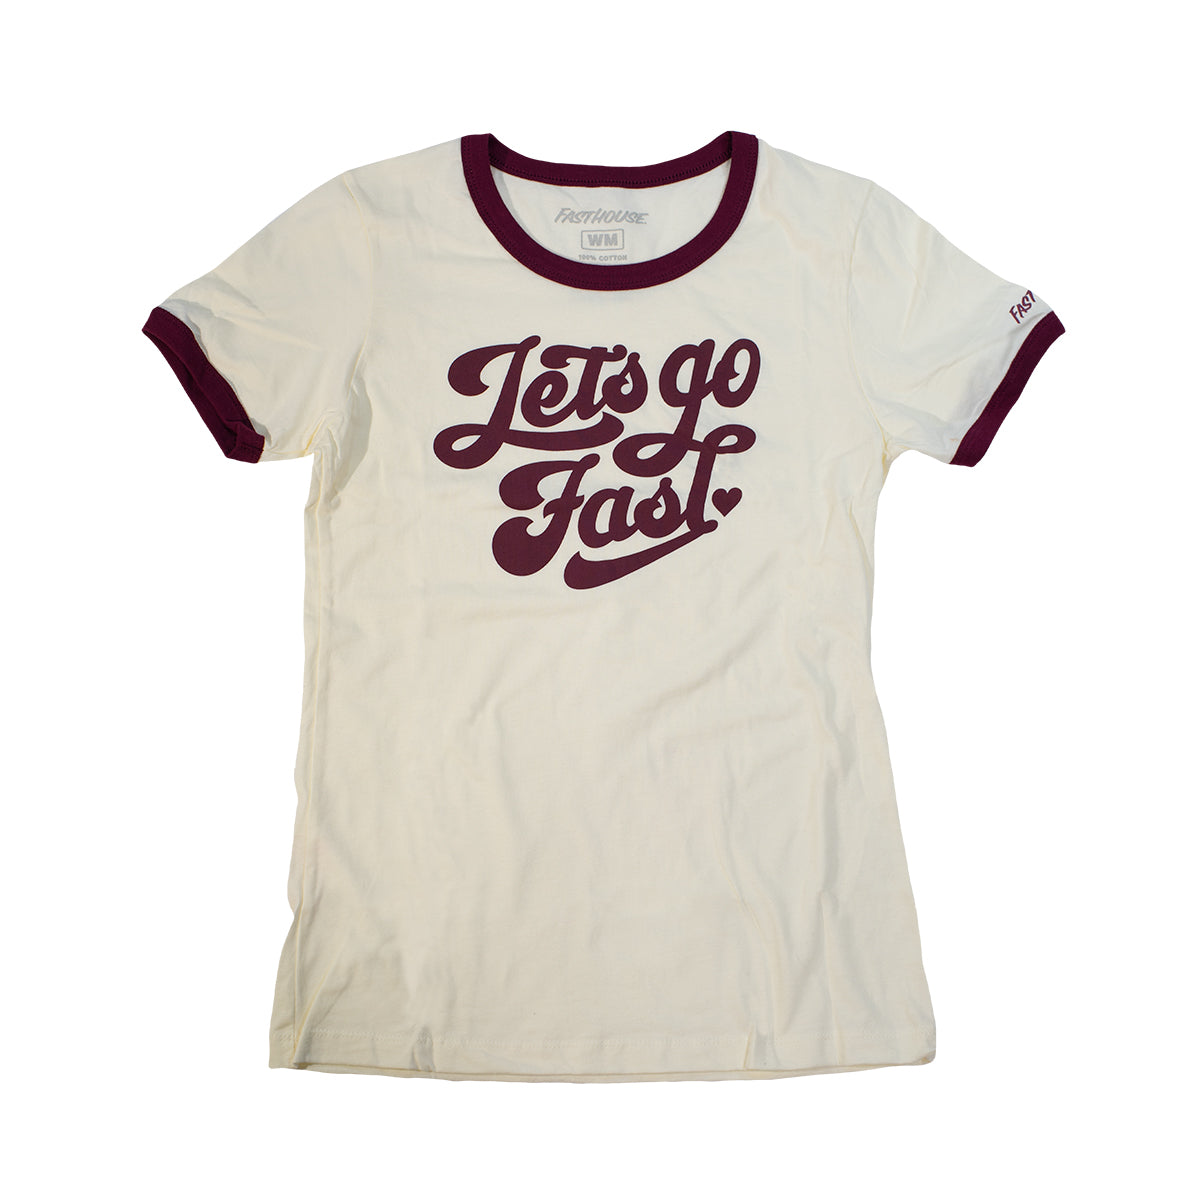 Let's Go Womens Ringer Tee - Natural/Maroon